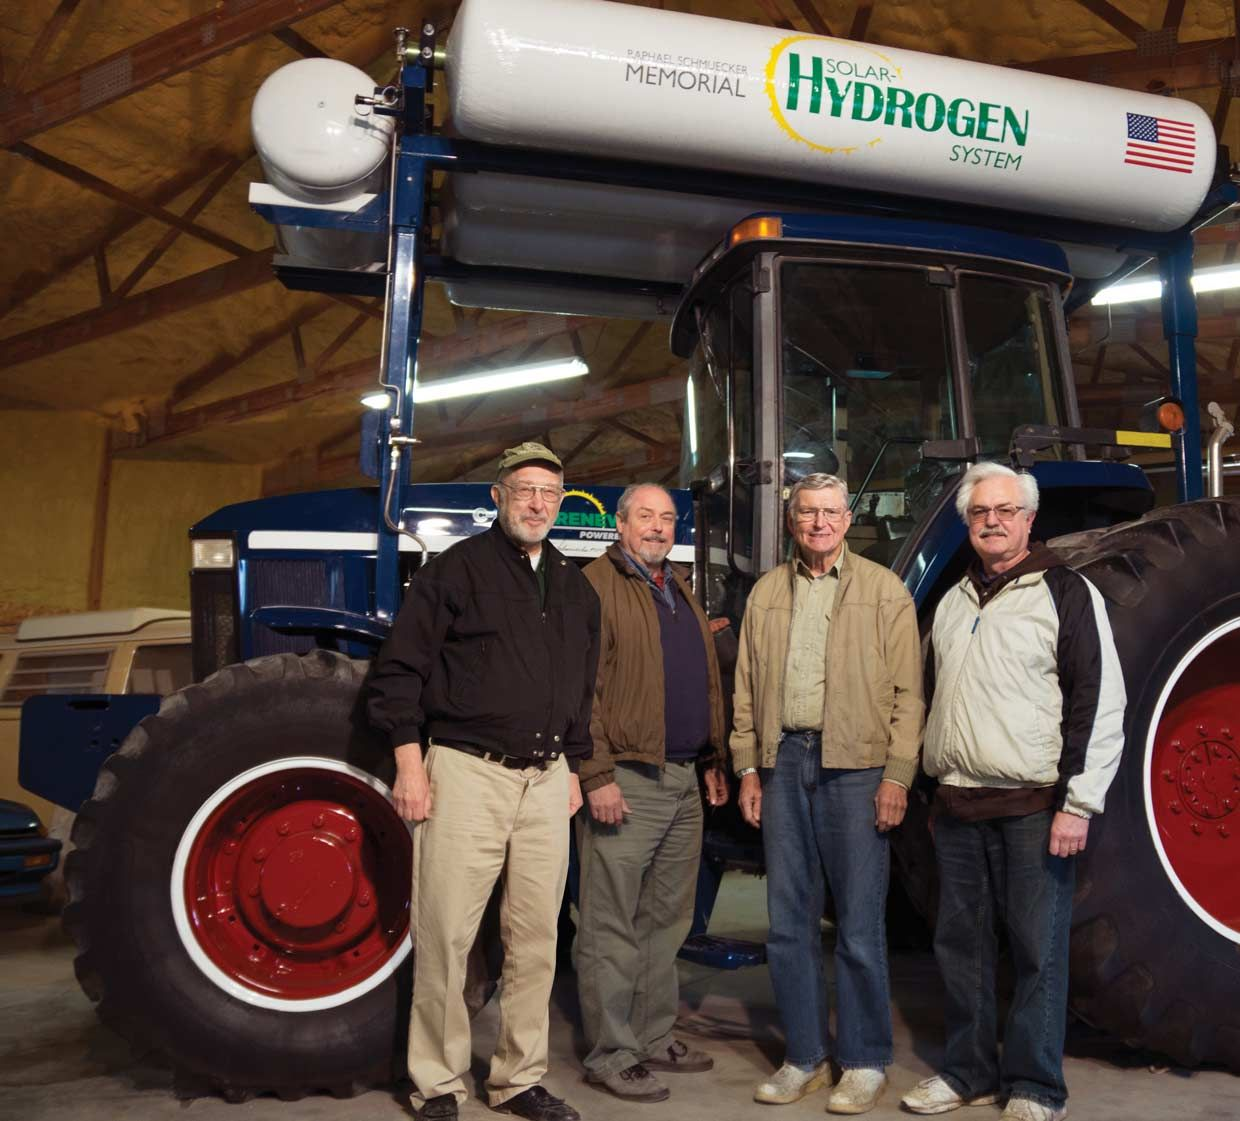 Four men standing in front of a tractor.